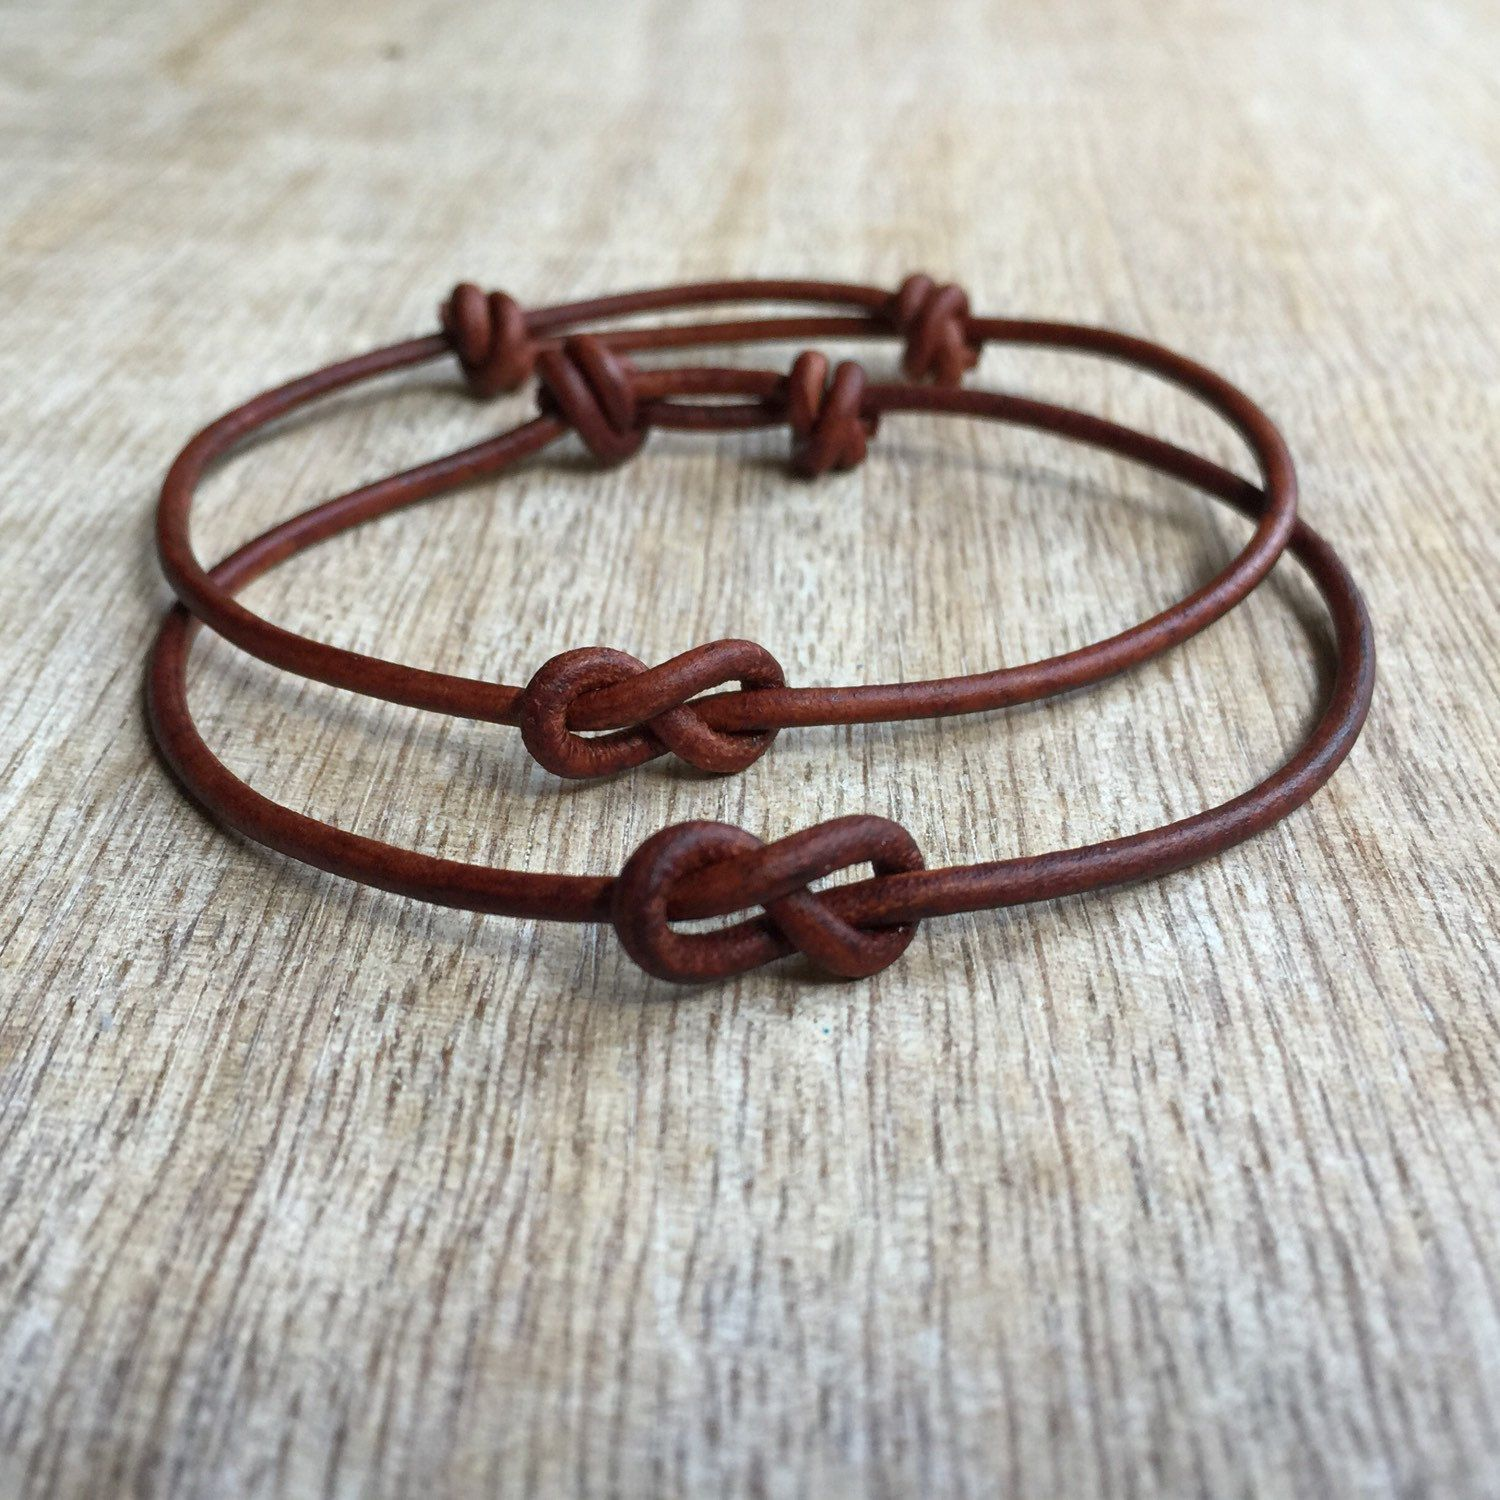 Brown leather matching bracelets these lovely bracelets are made